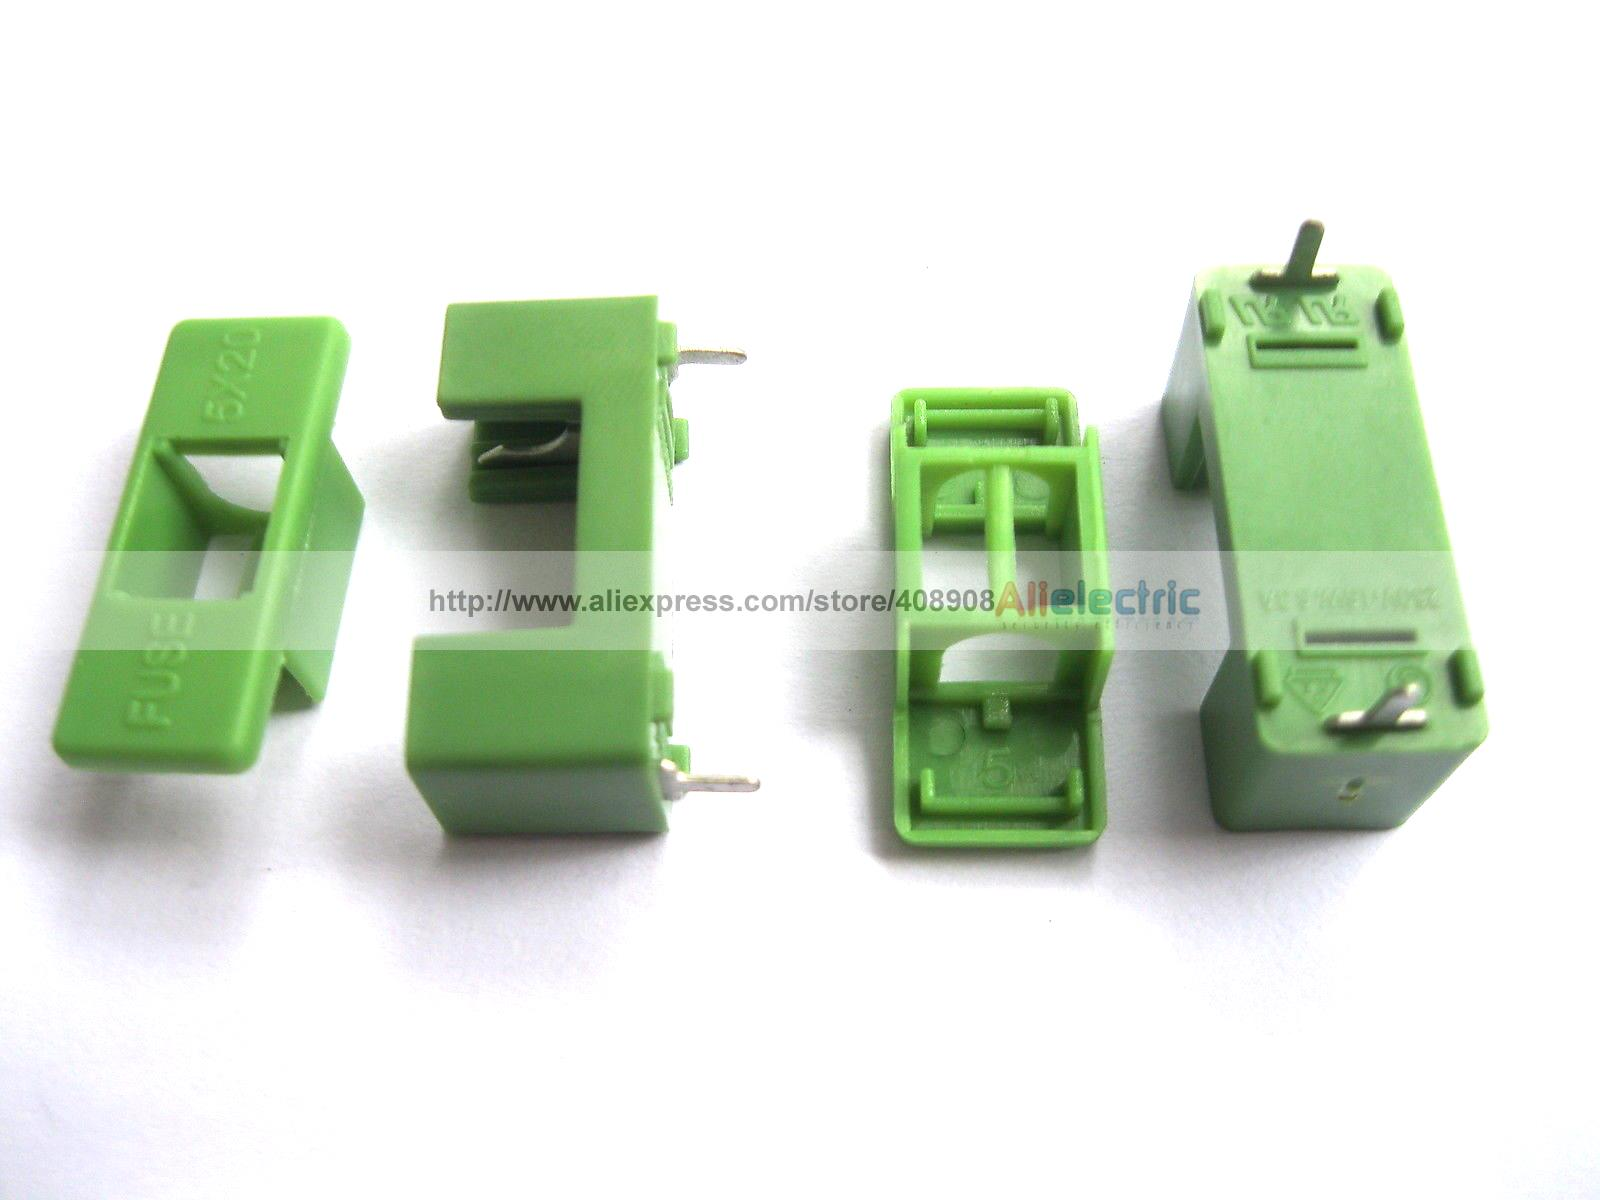 100 Pcs PTF 7 DIP Fuse Holder 6 3A 250V Used for 5x20 Green Color moc3063 dip 6